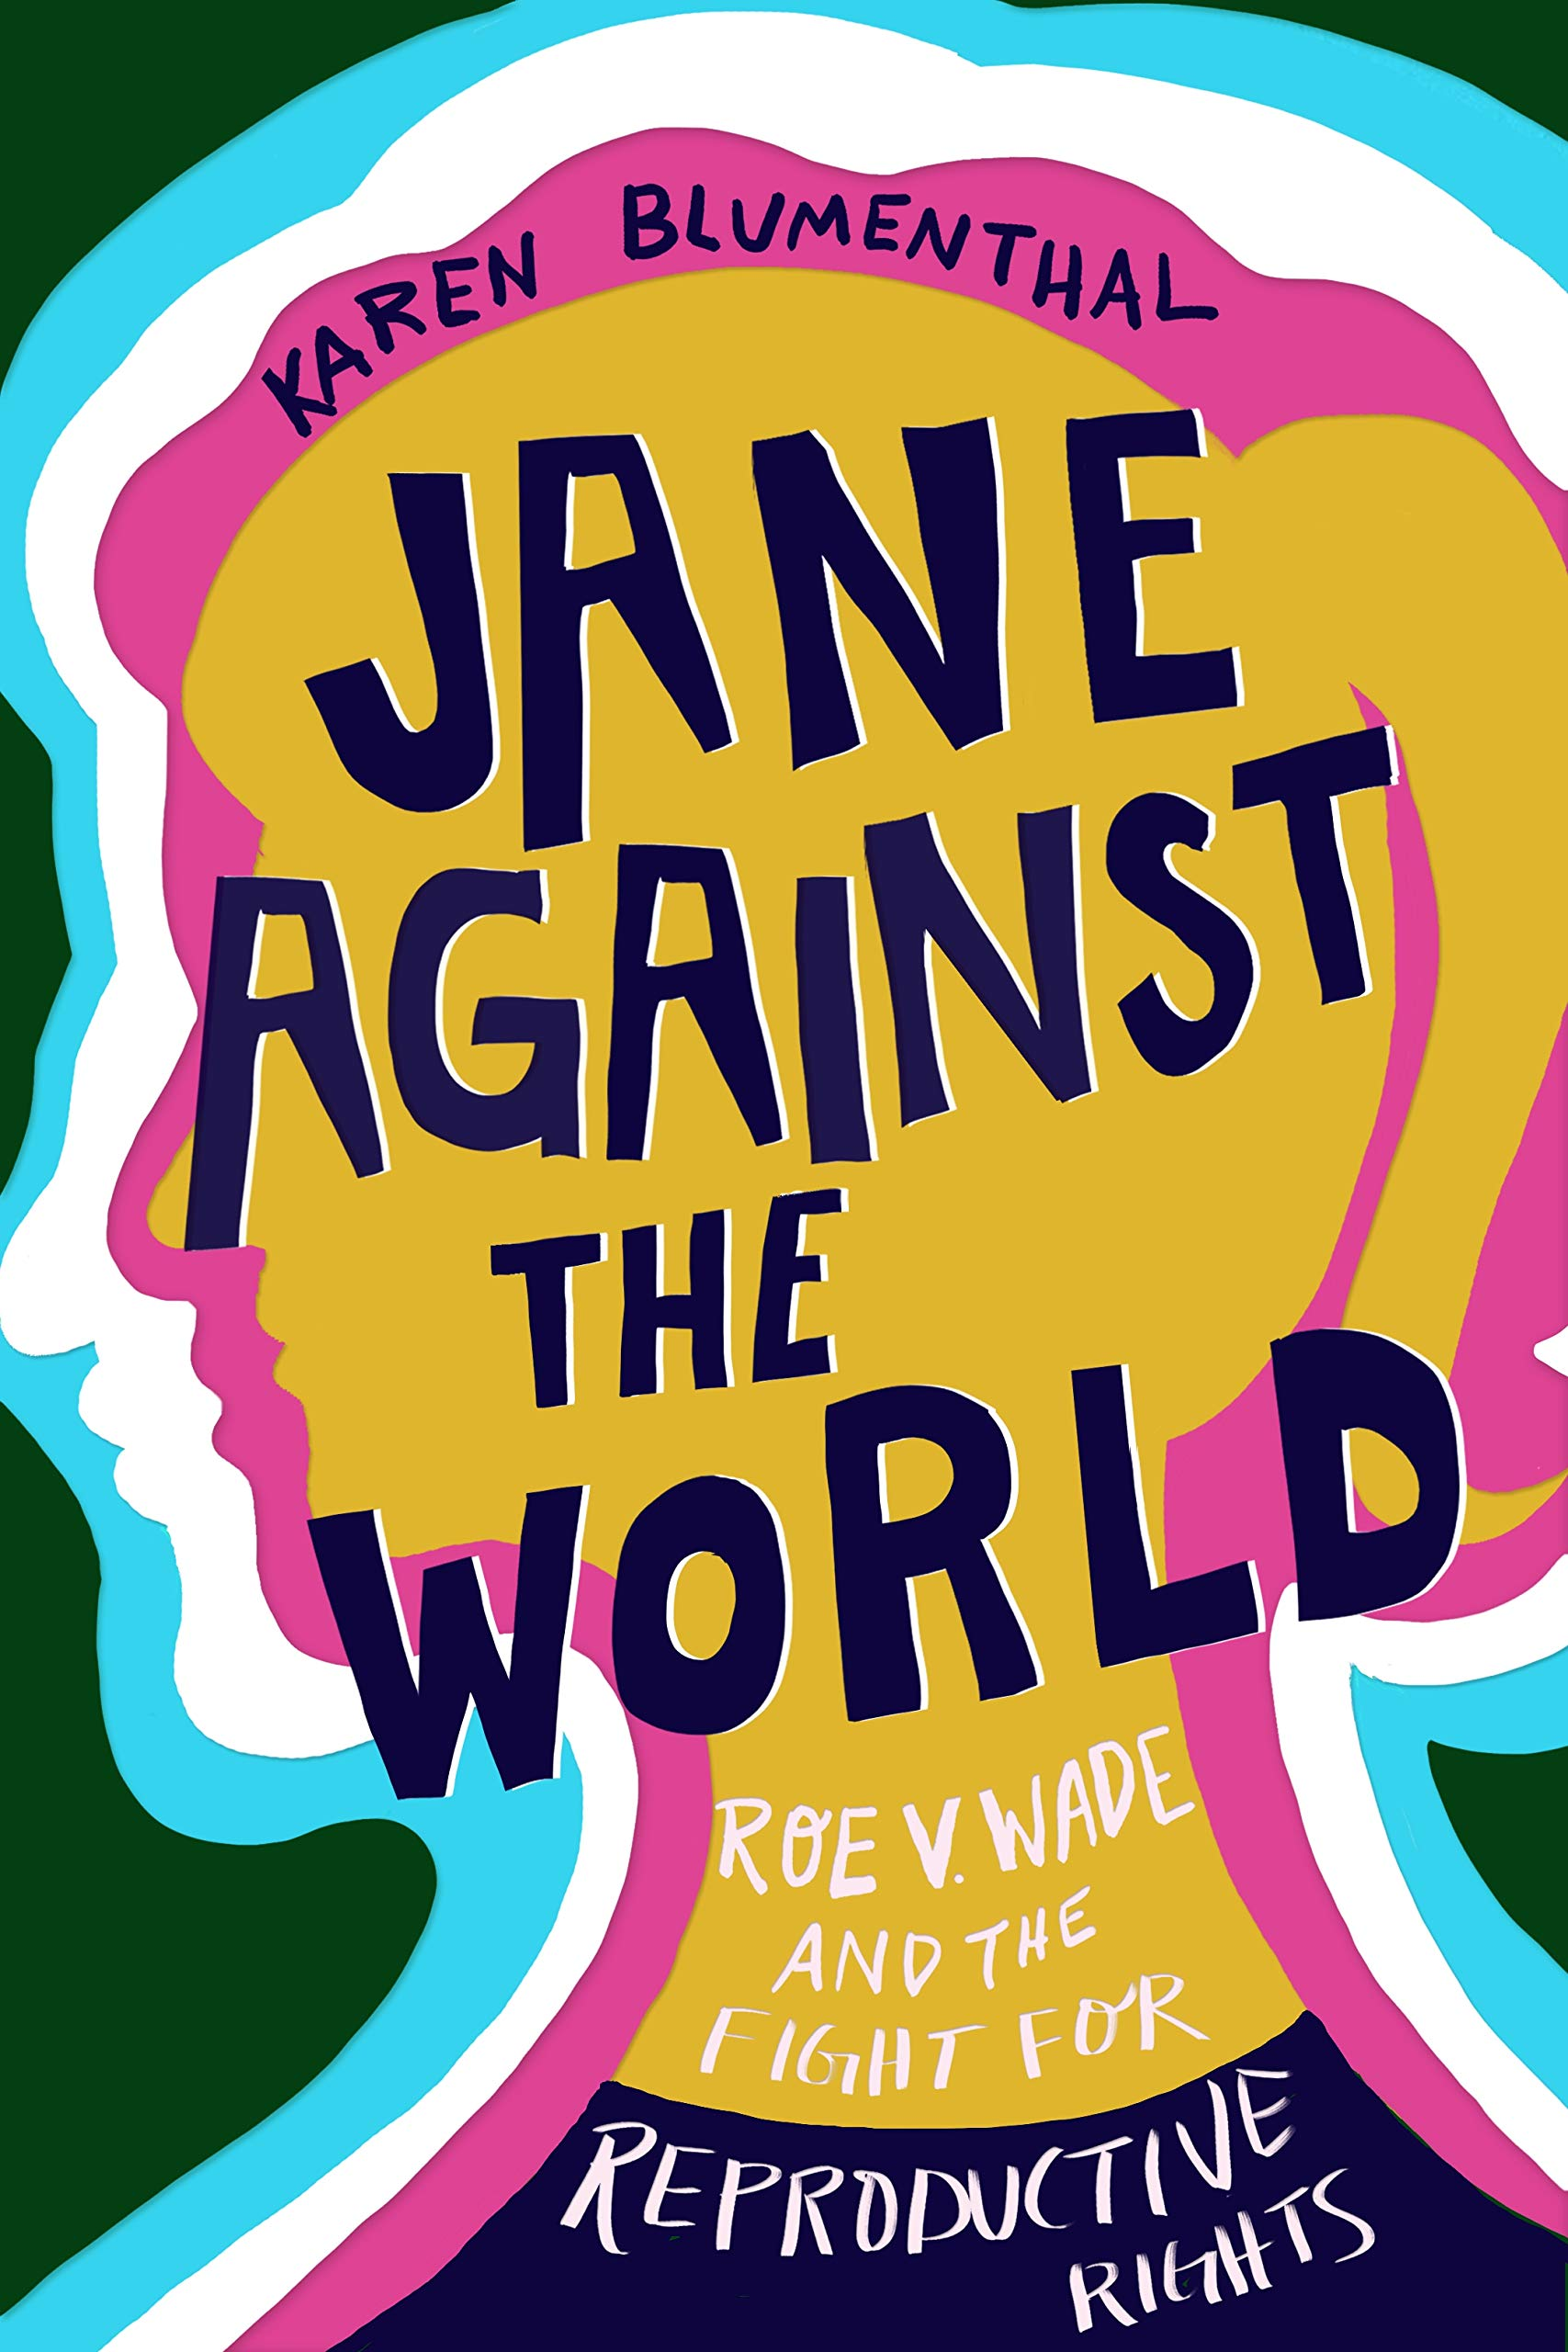 Amazon.com: Jane Against the World: Roe v. Wade and the Fight for Reproductive  Rights (9781626721654): Blumenthal, Karen: Books